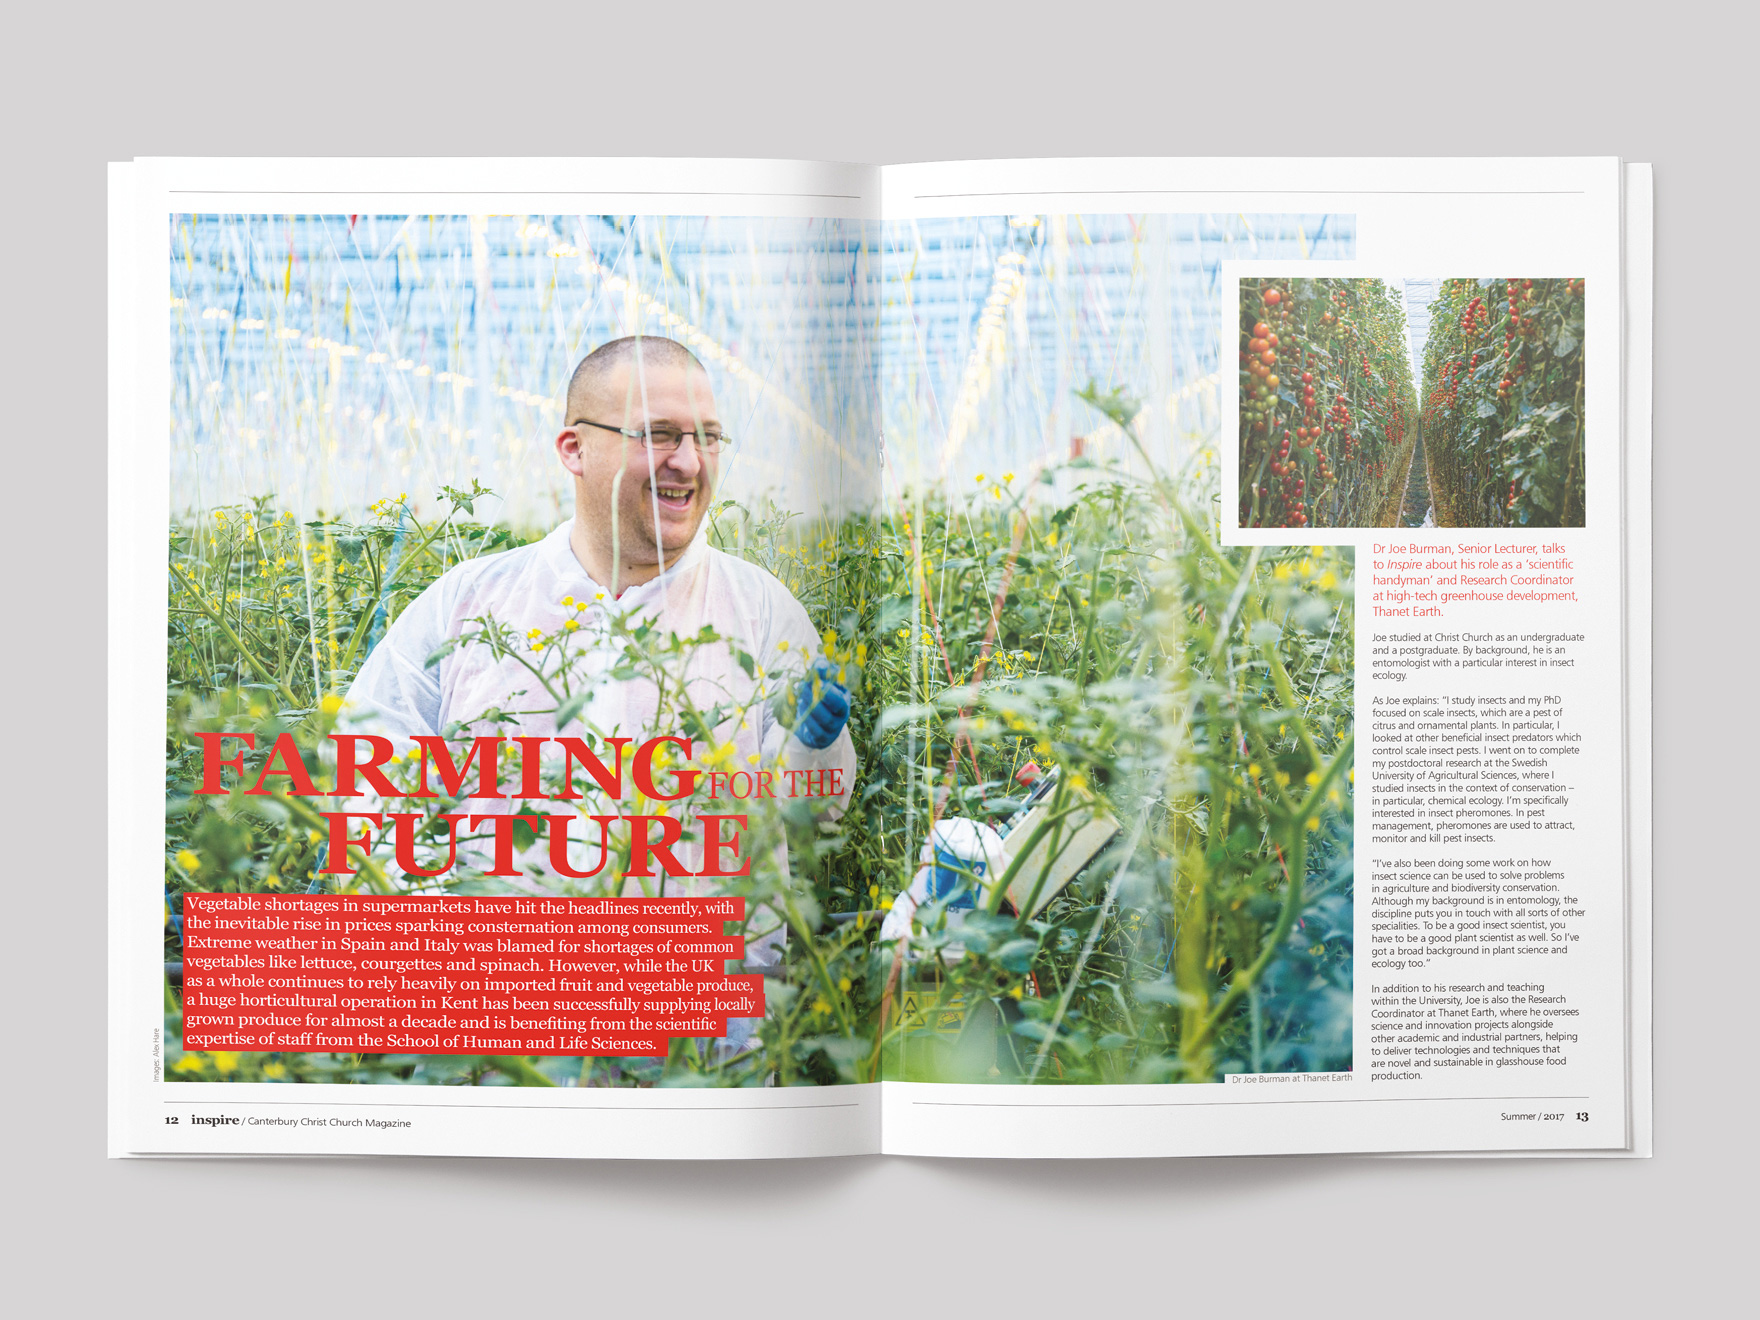 Inside pages from Inspire magazine, showing the opening pages of a feature on Farming for the Future